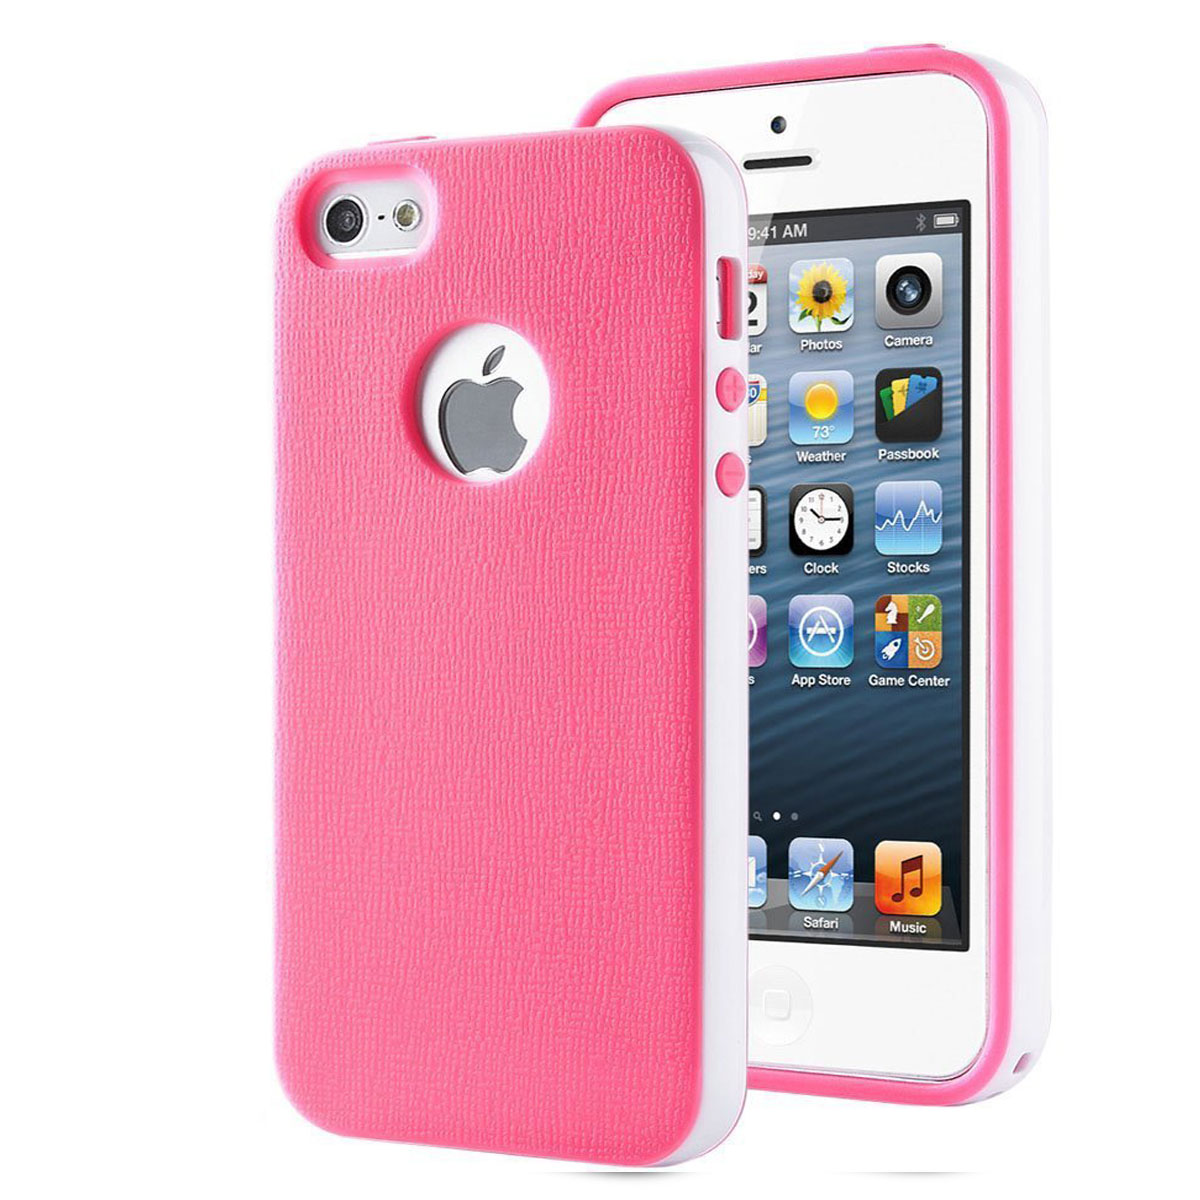 ULAK Soft Frame Case Slim Rubber cases Anti-Scratch Shell Premium Dual Color TPU Cover for iPhone 5 5s(China (Mainland))